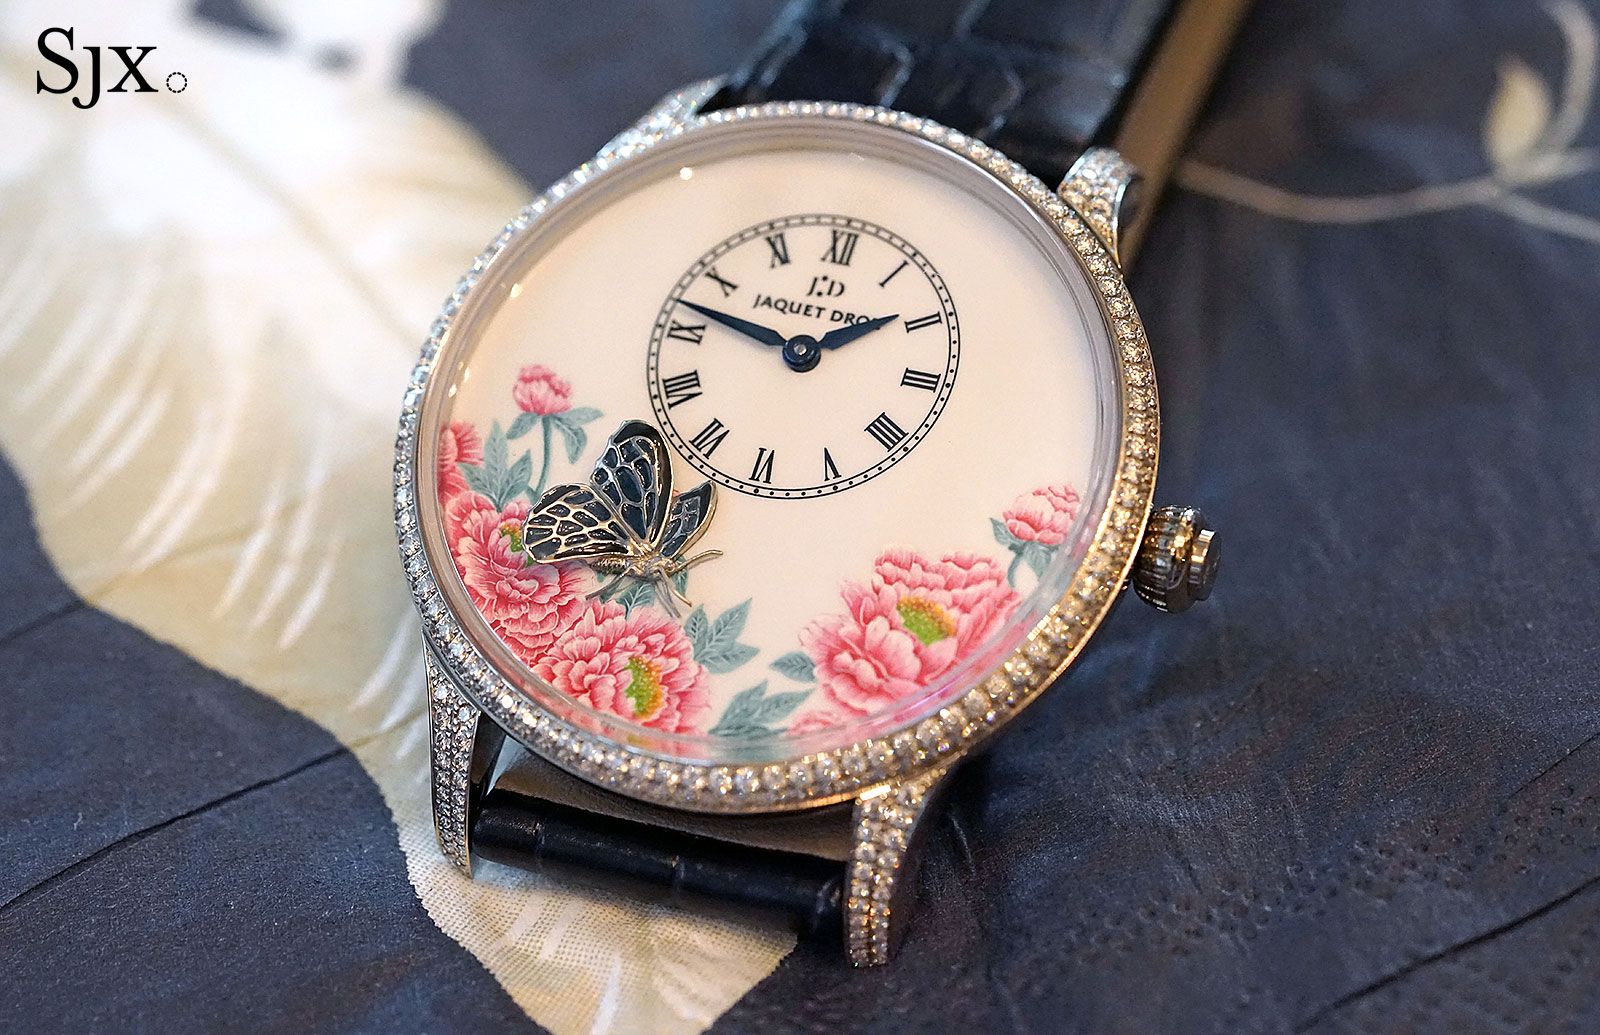 Jaquet Droz Petite Heure Minute The Butterfly Journey 2